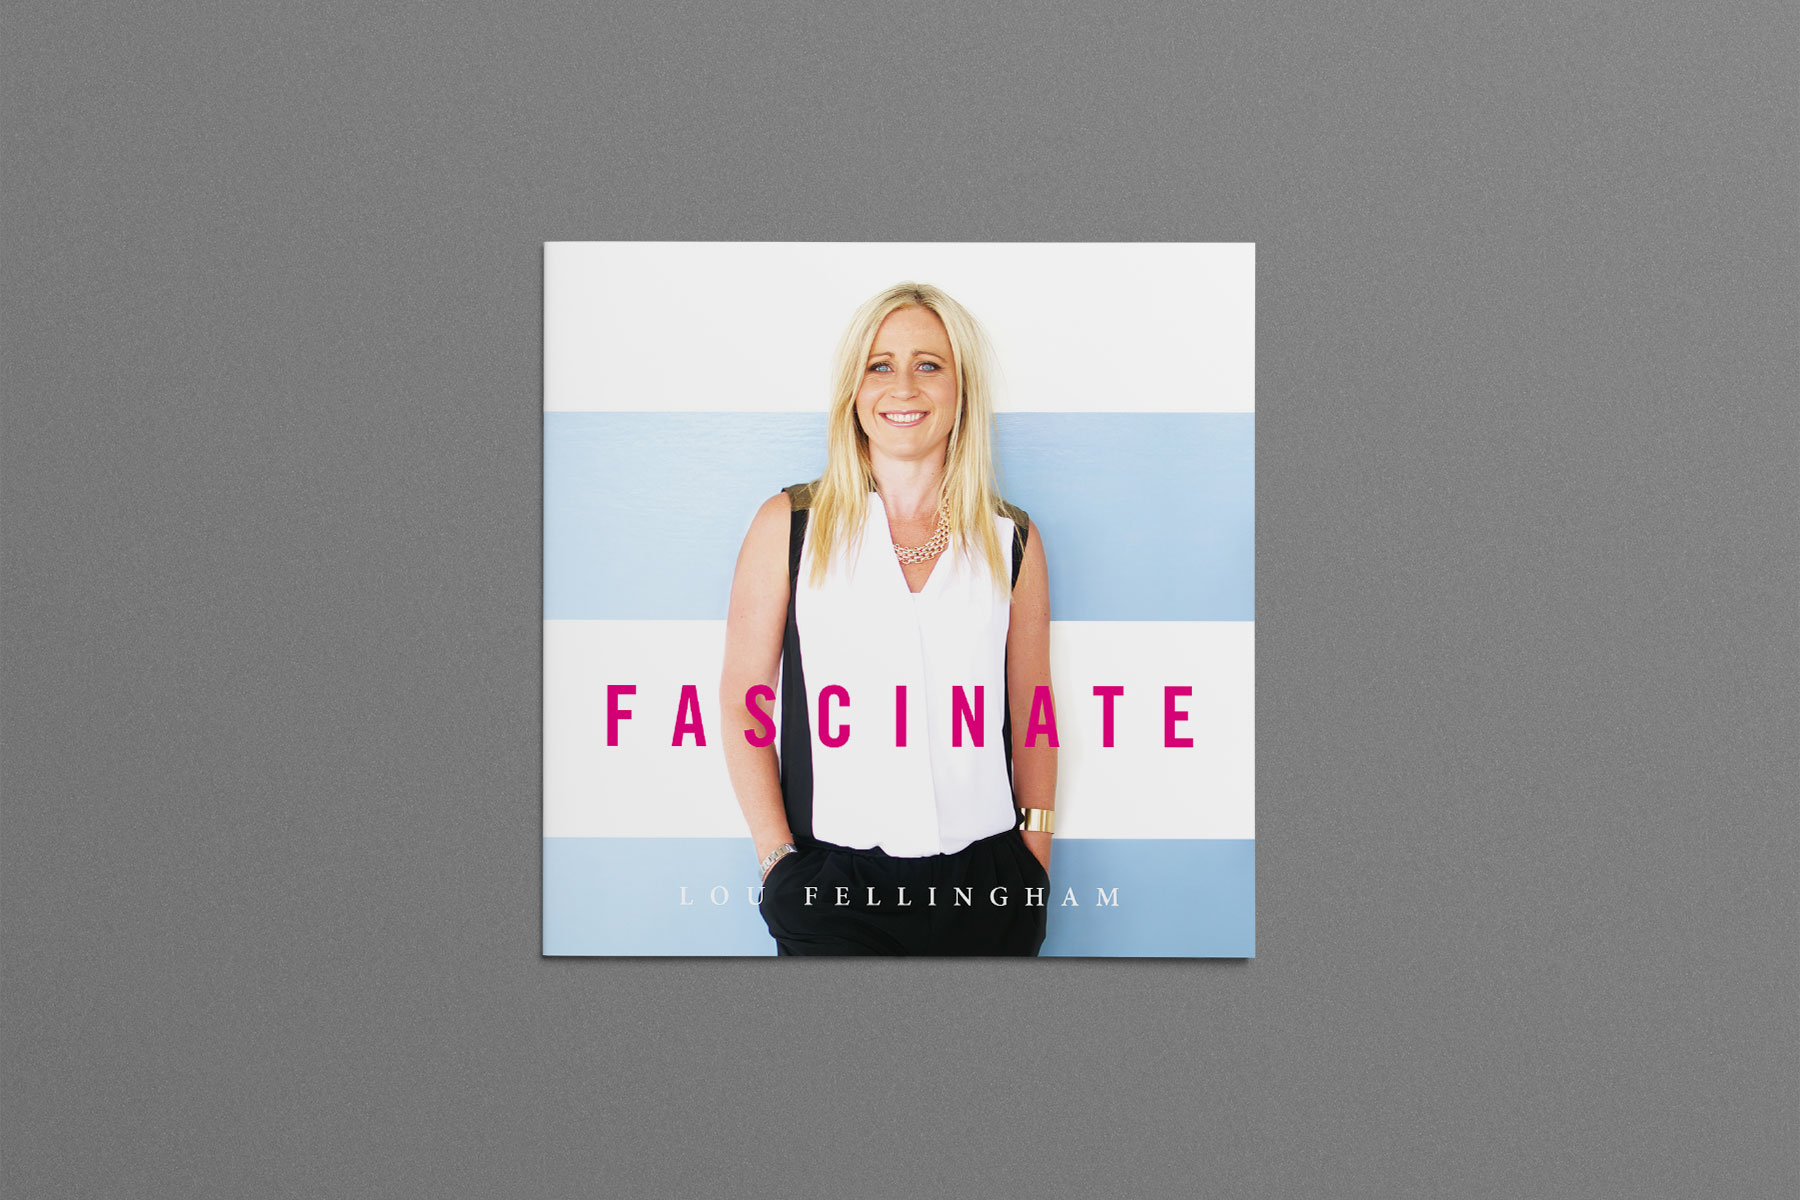 Lou Fellingham – Fascinate album design